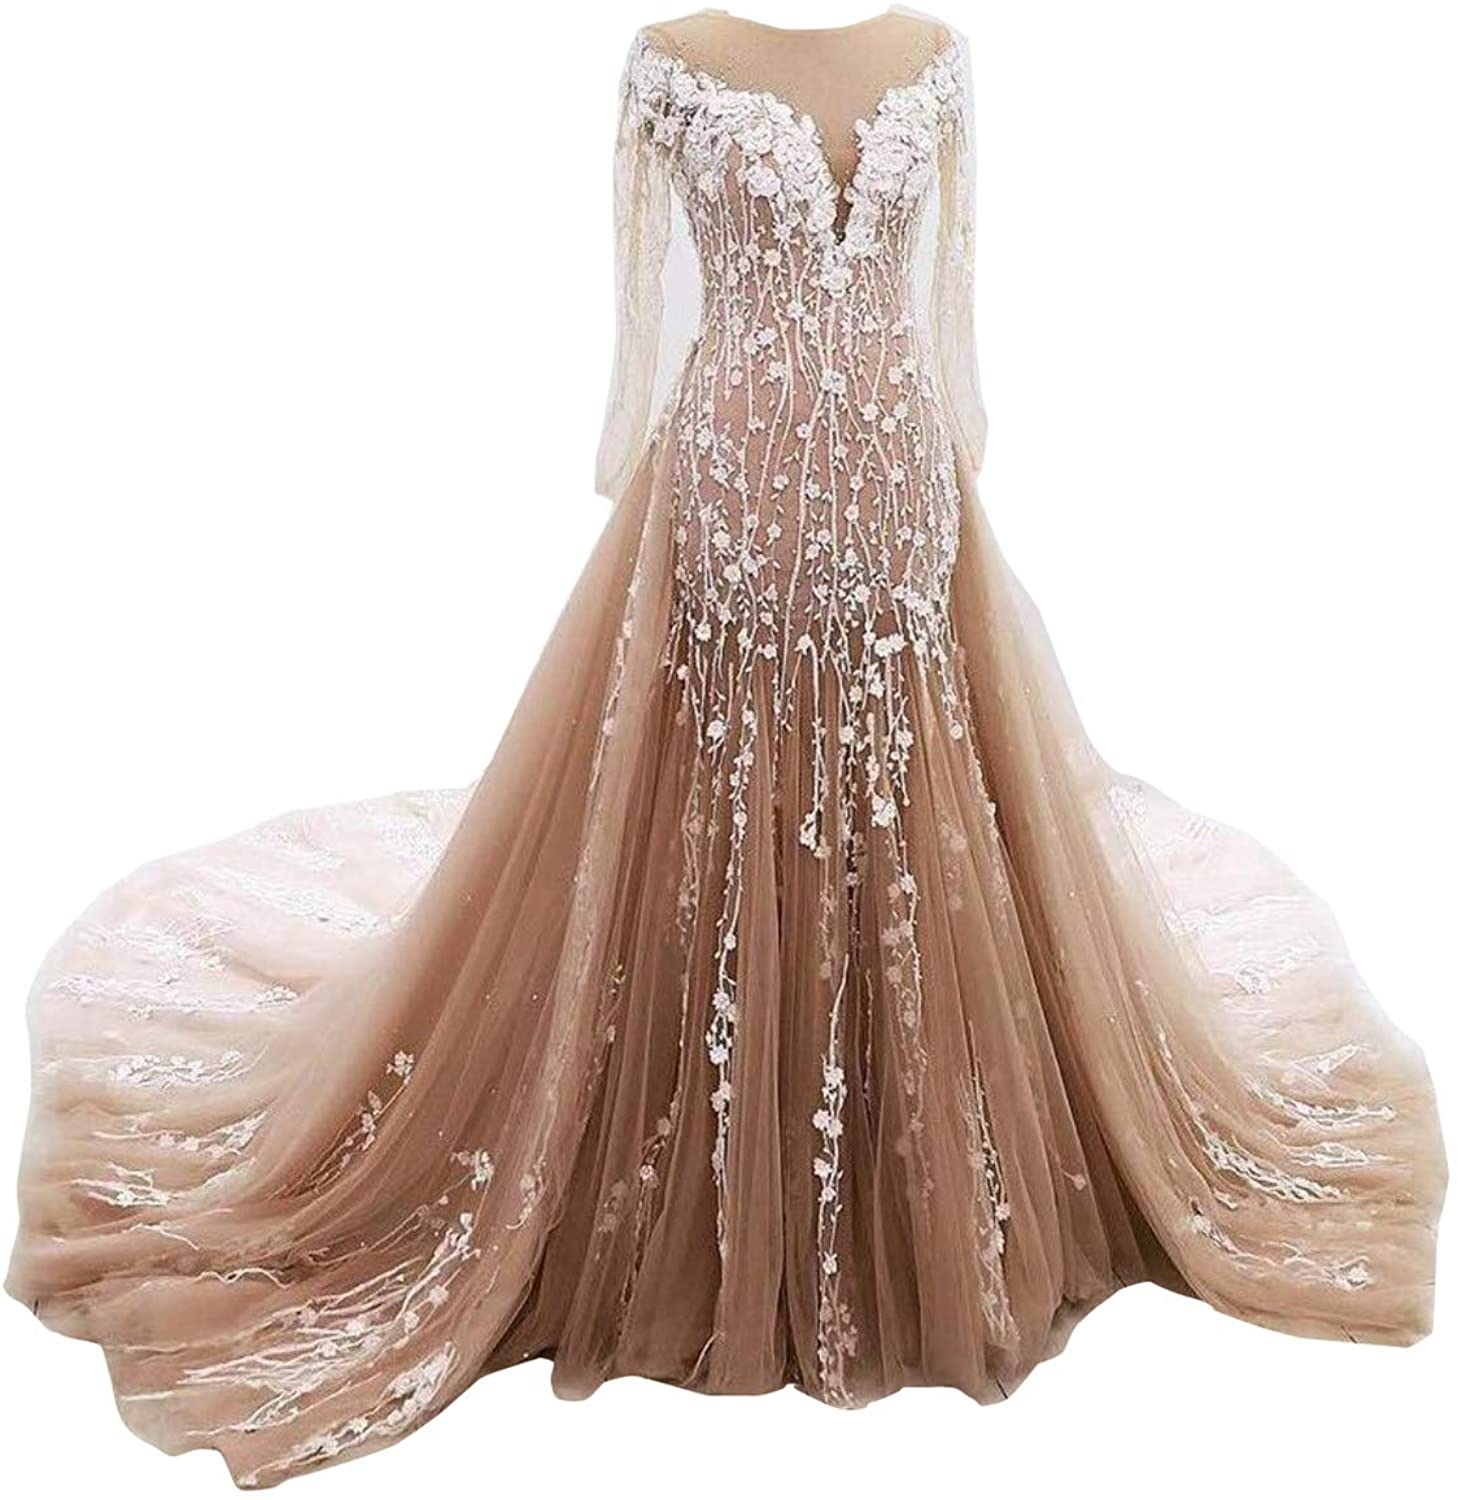 Aries Tuttle gold Mermaid Wedding Party Evening Dress Prom Gown Detachable Train